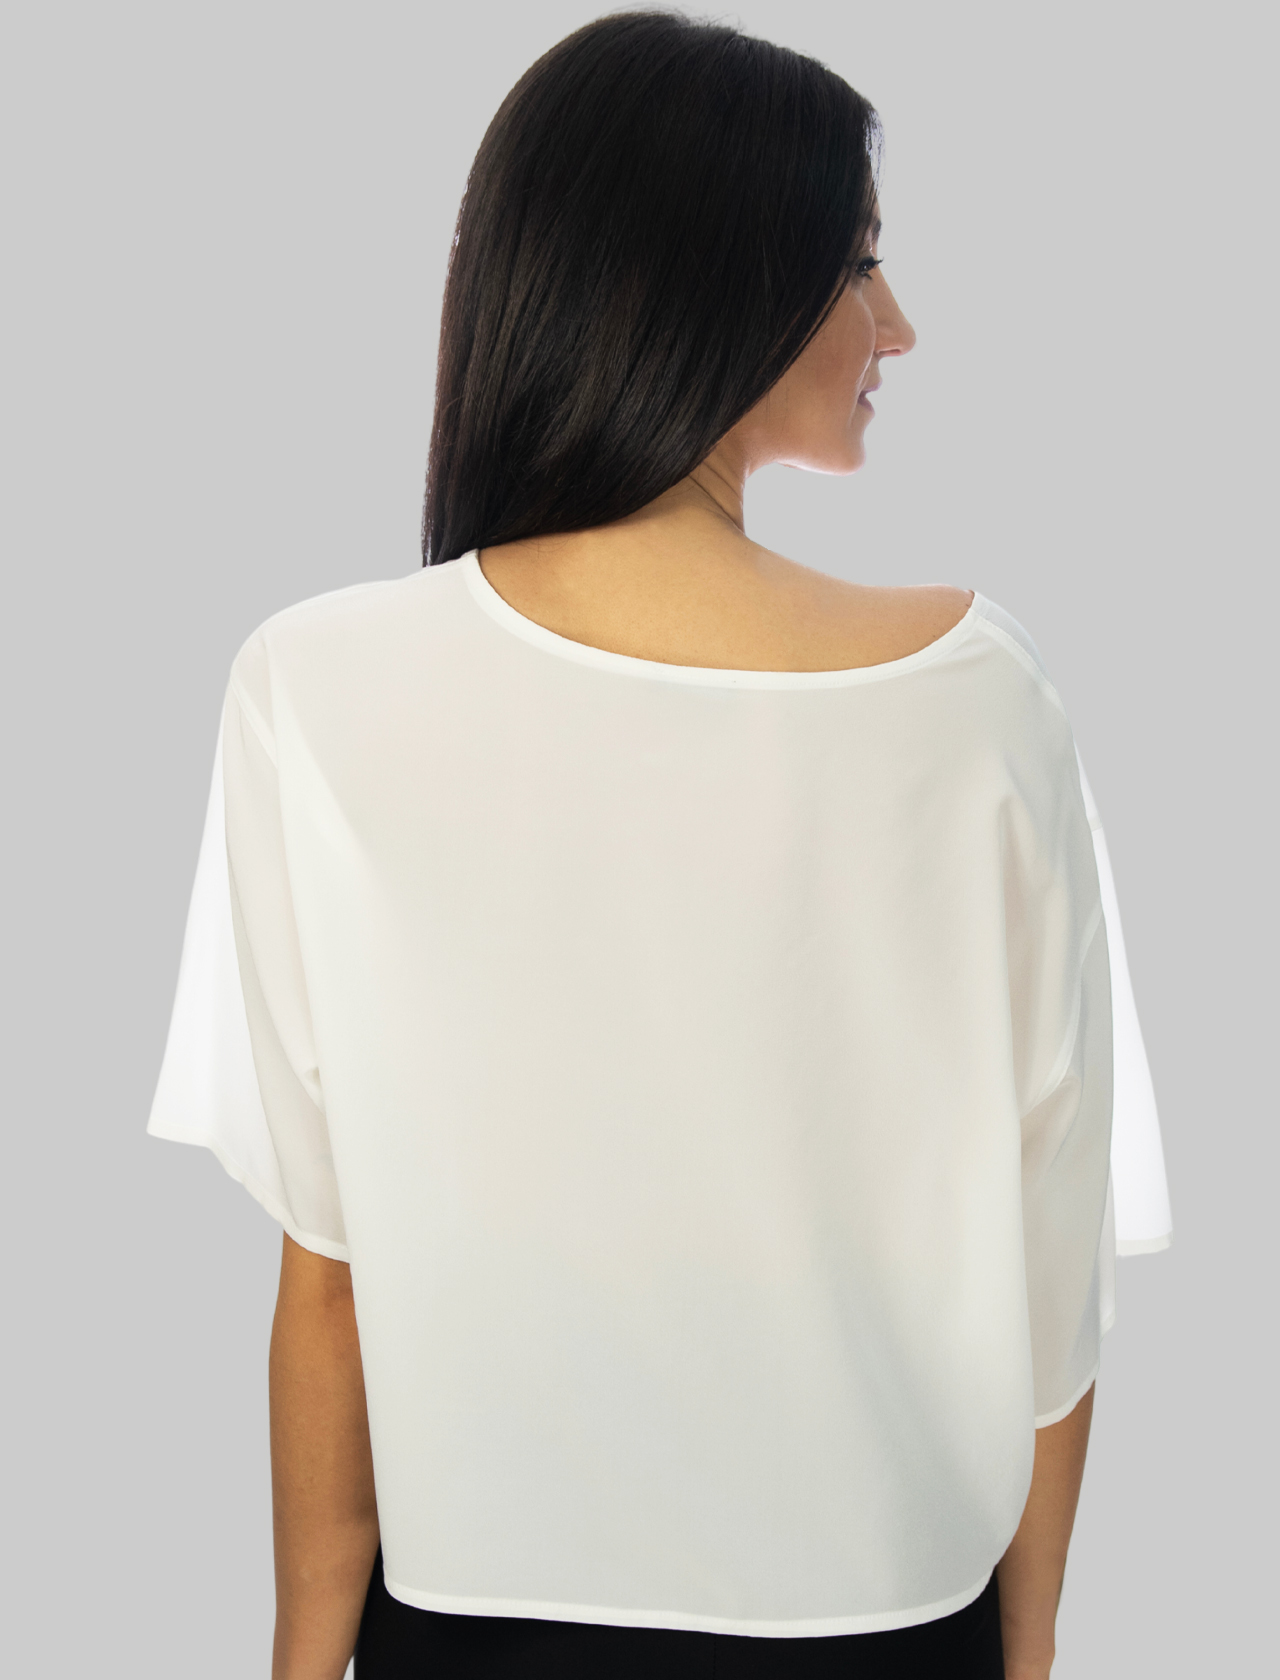 Women's Clothing Crepe de Chine Over Silk T-shirt in Natural Maliparmi | Shirts and tops | JM54243004410001